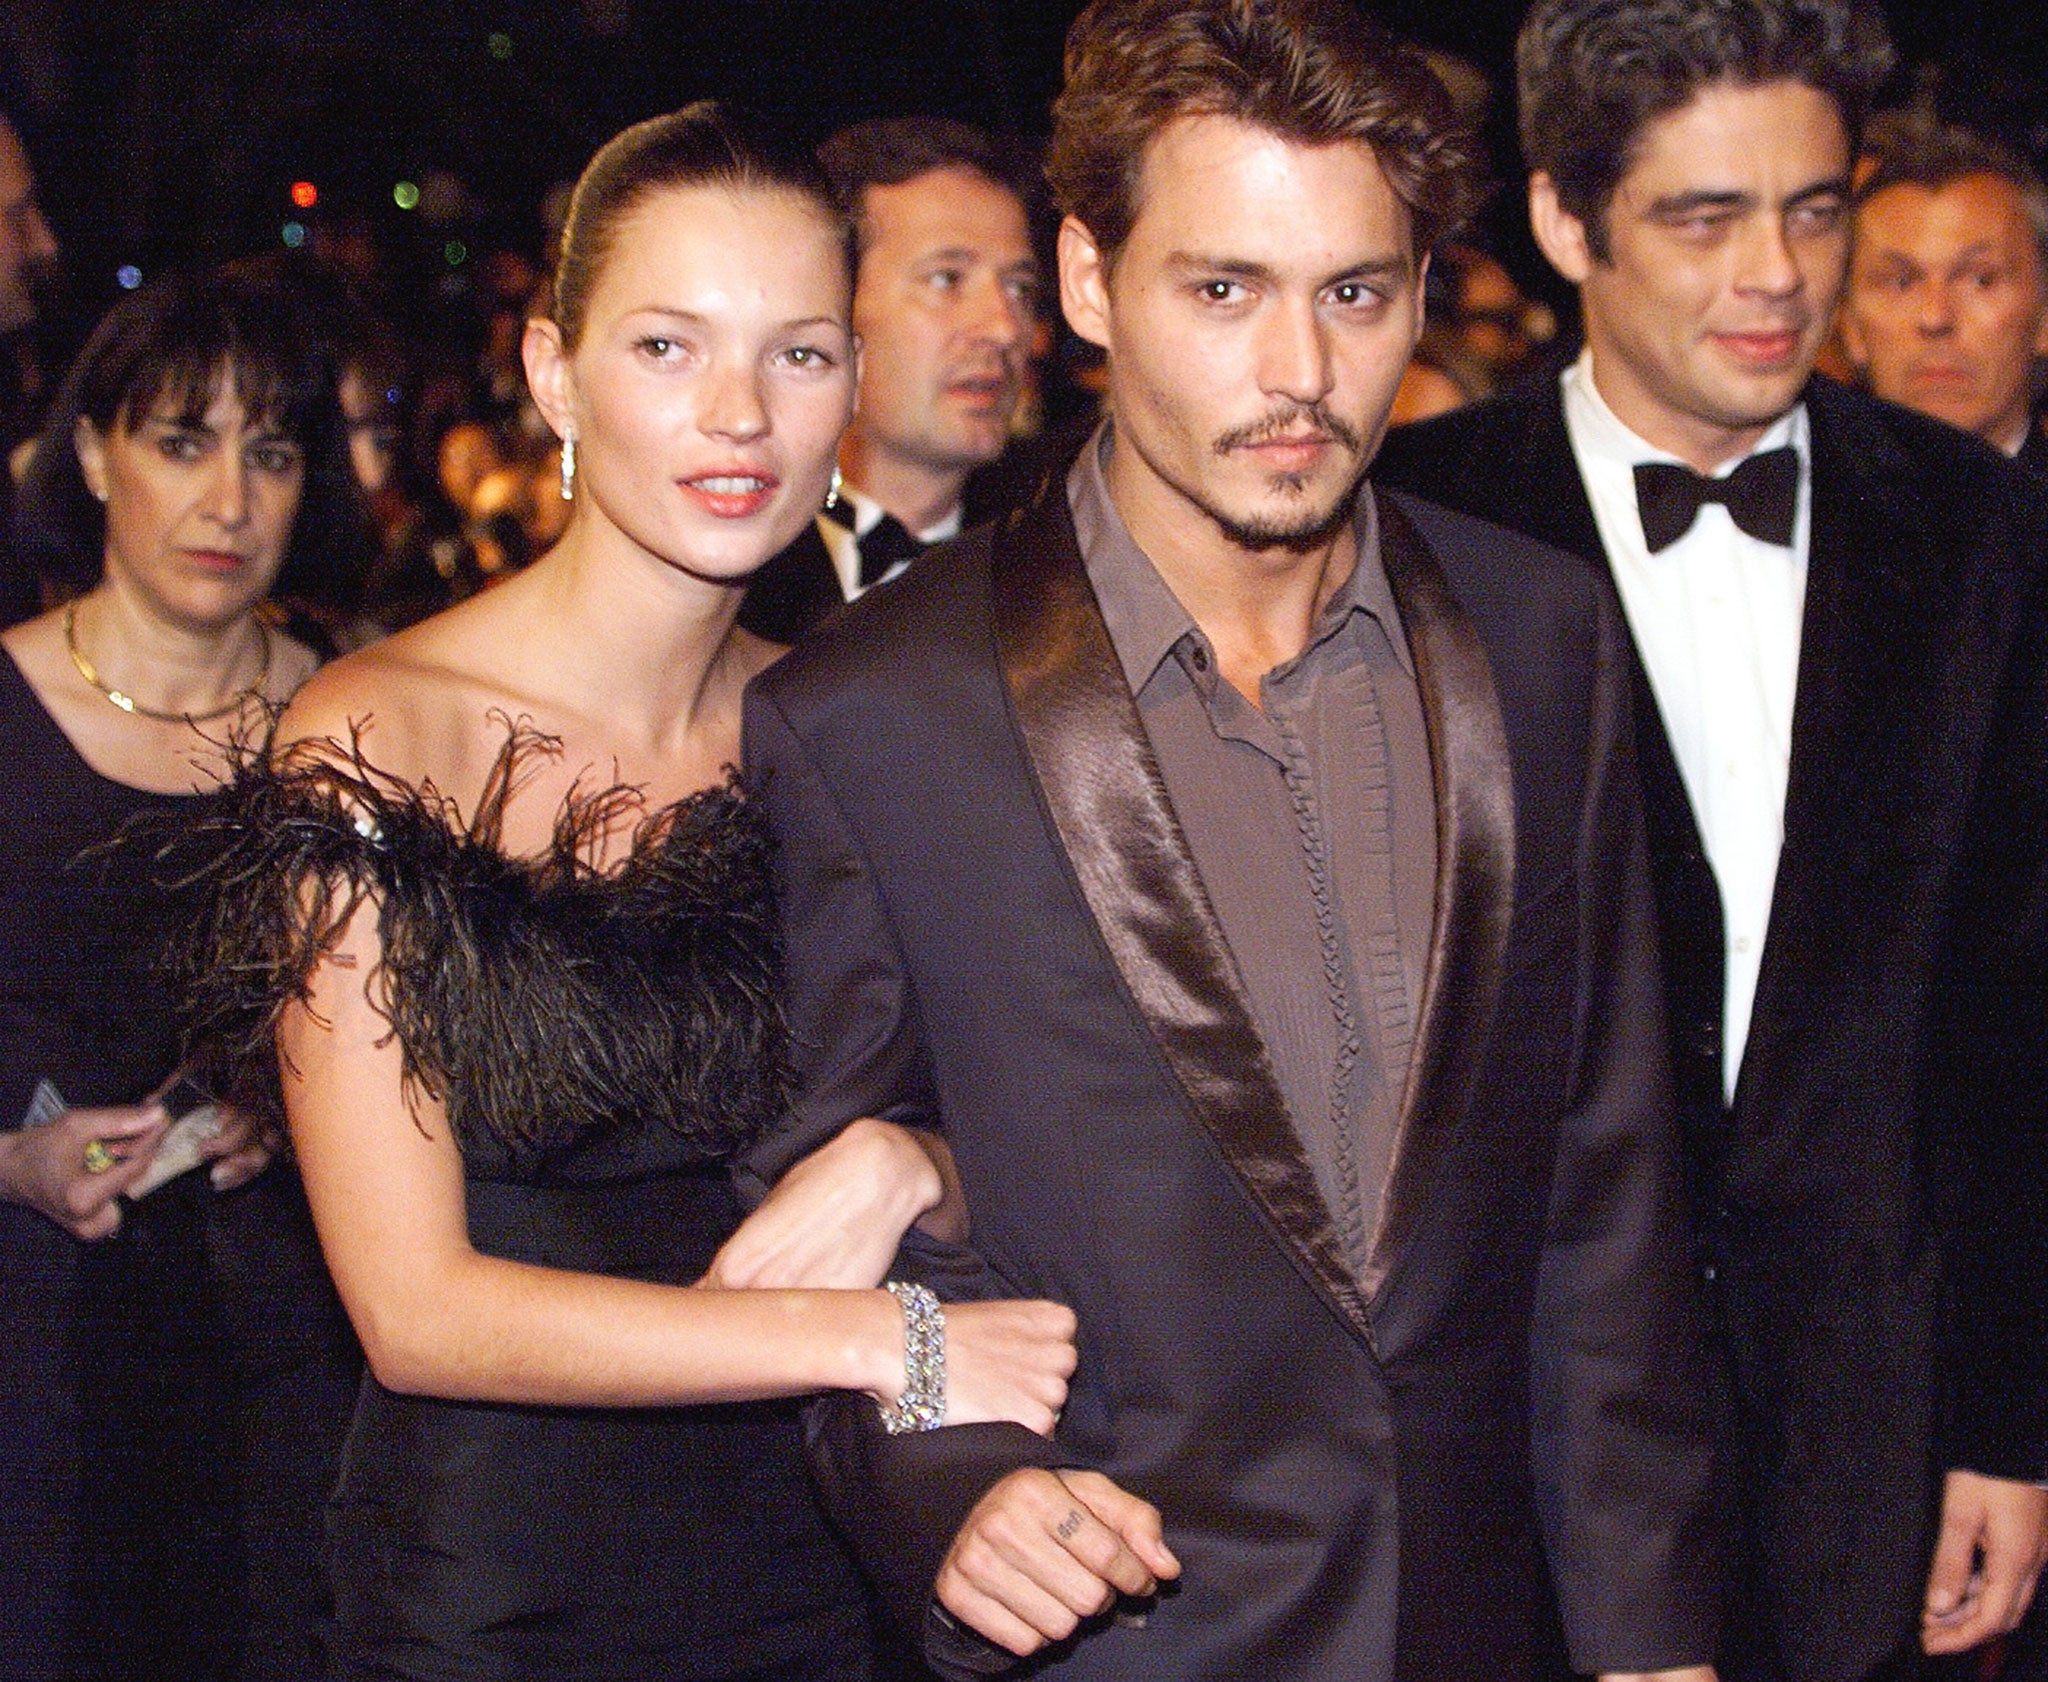 madonna kate moss and tom cruise 10 of the most awkward. Black Bedroom Furniture Sets. Home Design Ideas